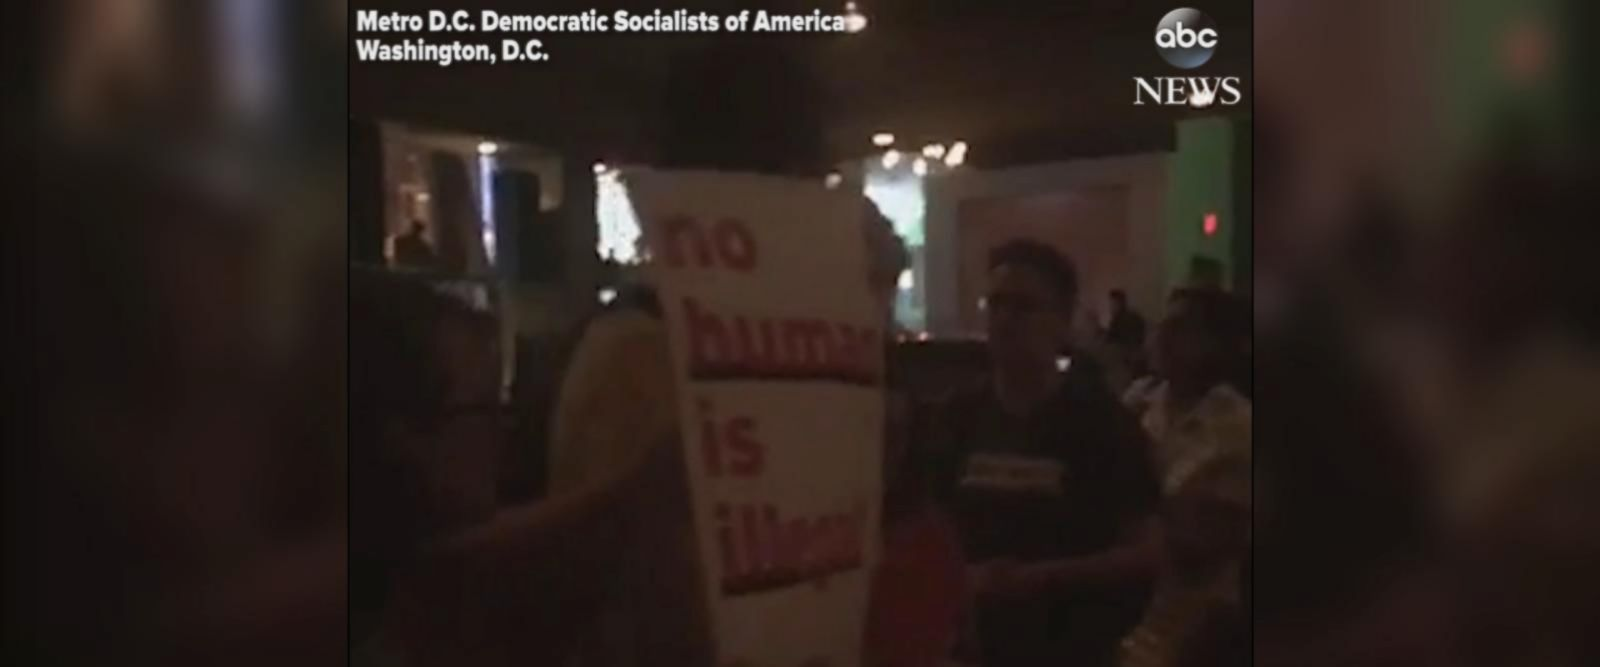 VIDEO: Homeland Security secretary heckled at Mexican restaurant